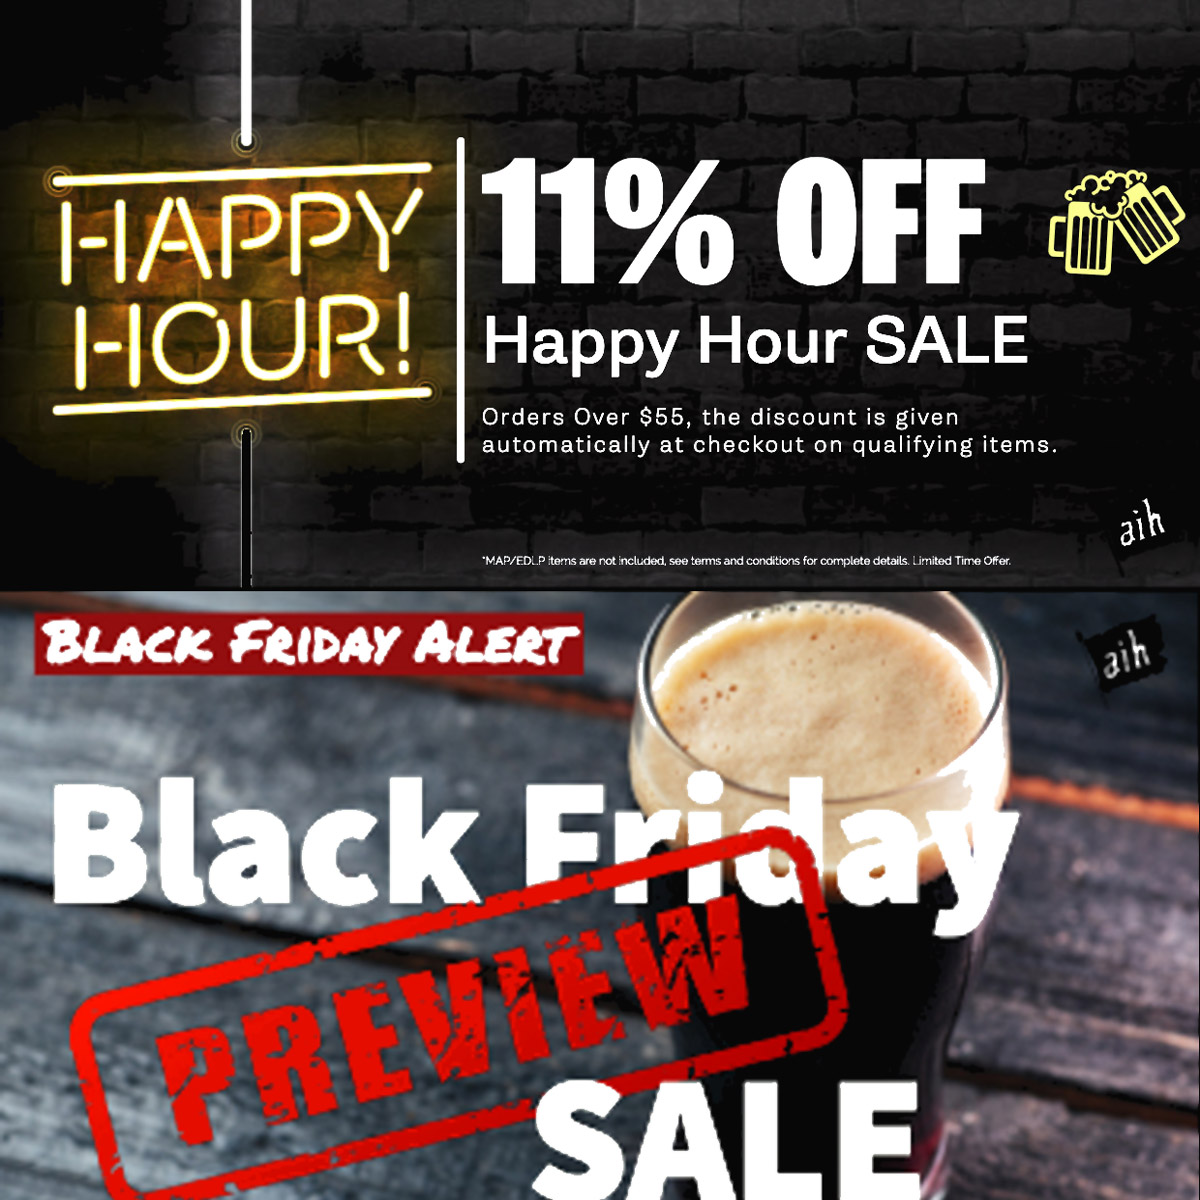 Home Wine Making Coupon Codes for Save 11% On Orders Over $55 at Adventures in Homebrewing Plus Black Friday Deals Coupon Code